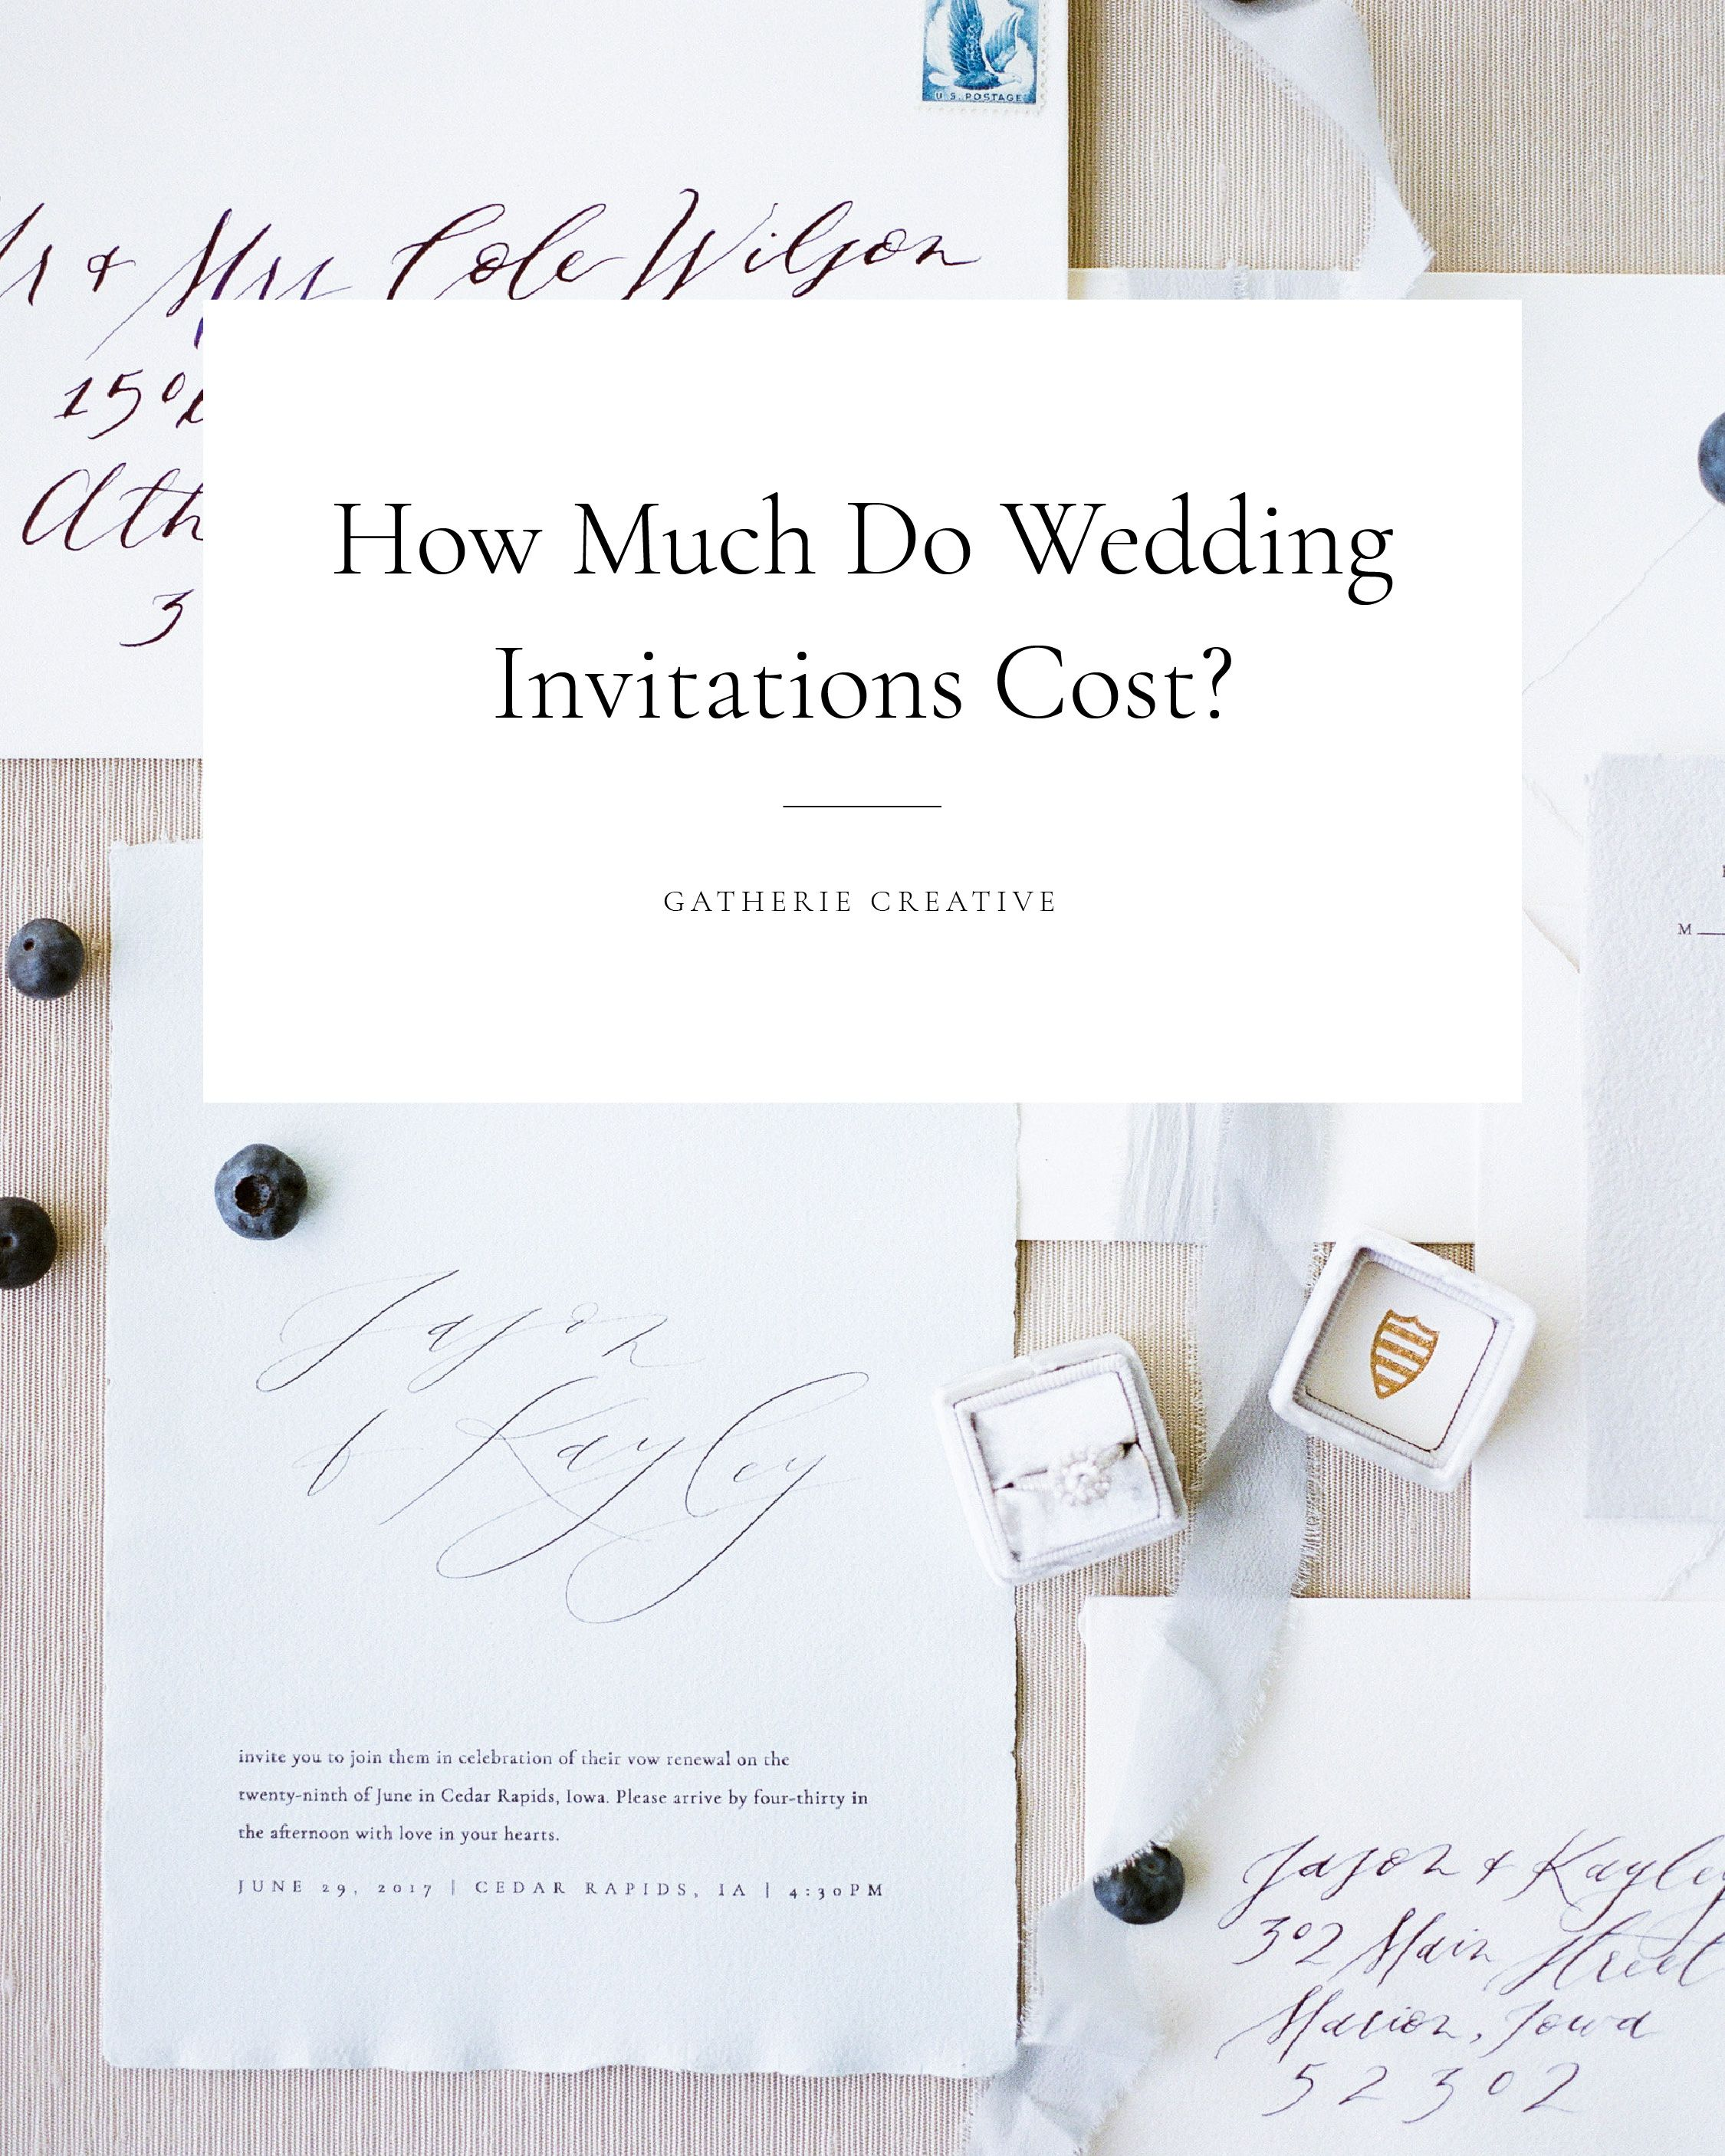 HOW MUCH DO WEDDING INVITATIONS COST? | Weddings and Wedding